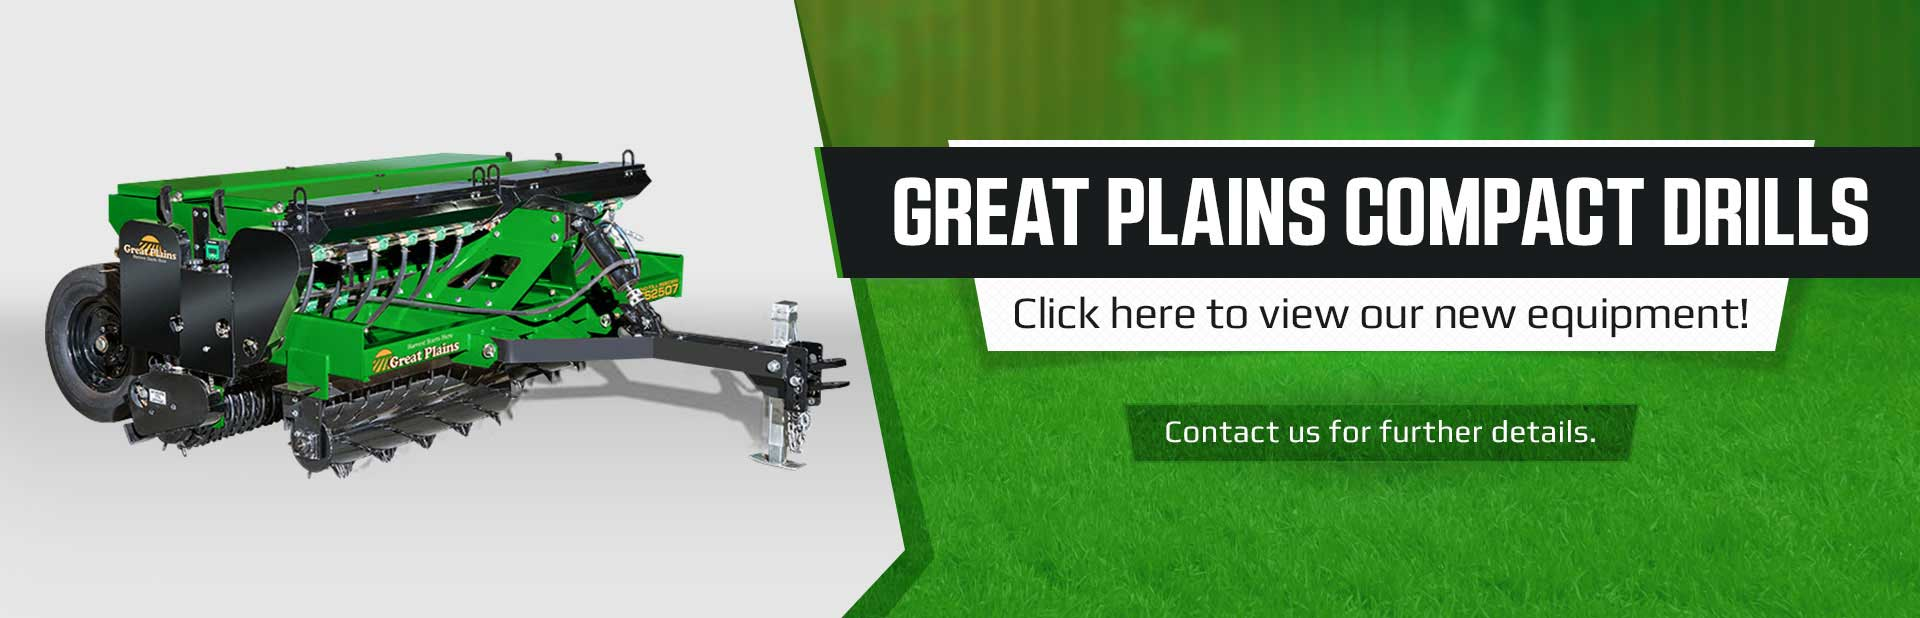 Great Plains Compact Drills: Click here to view our new equipment or contact us for further details.